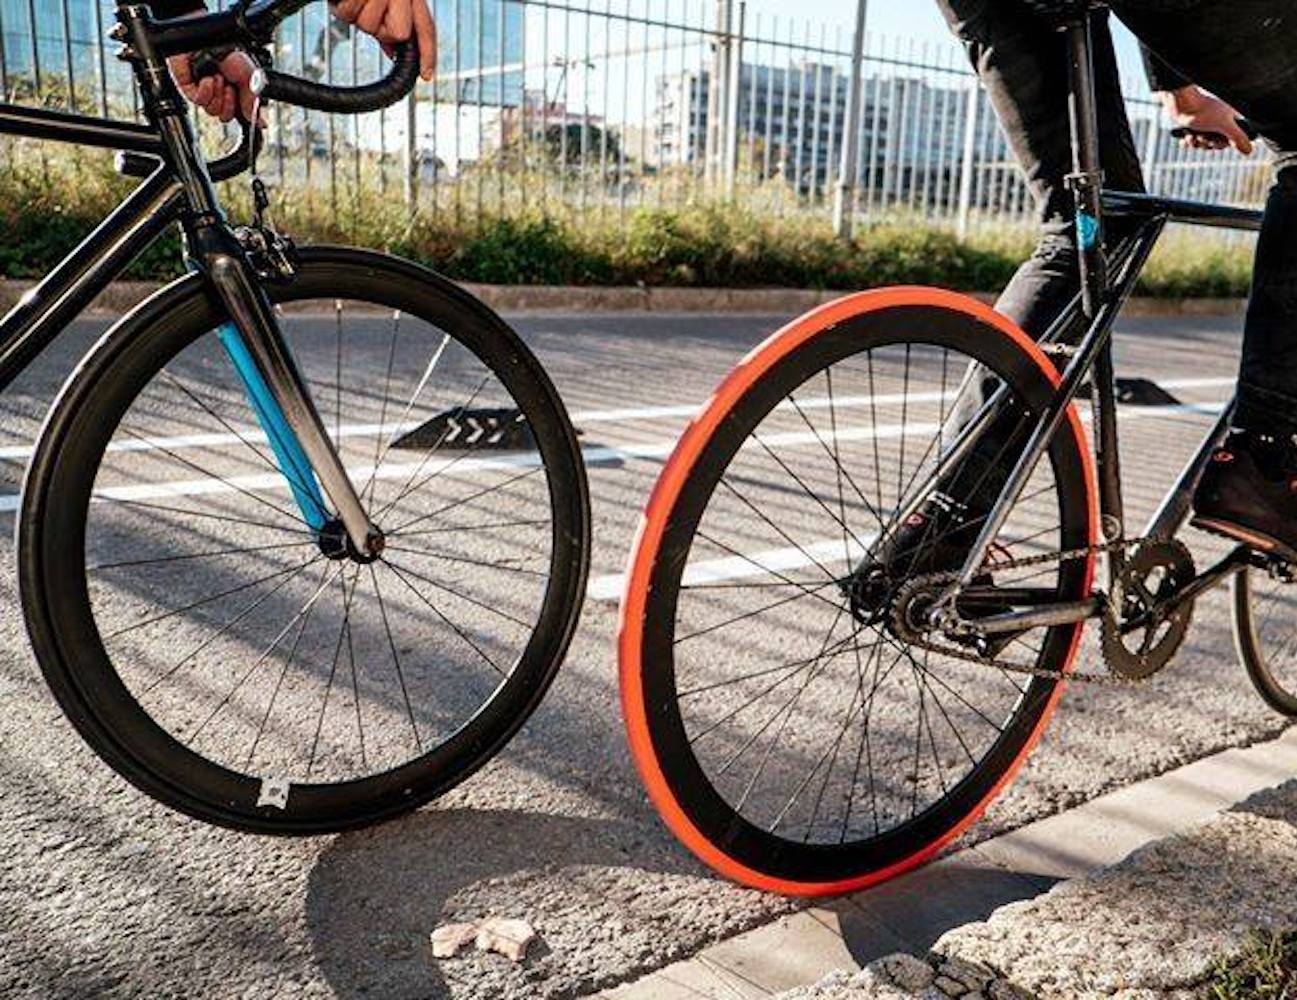 Tannus Airless Bicycle Tires